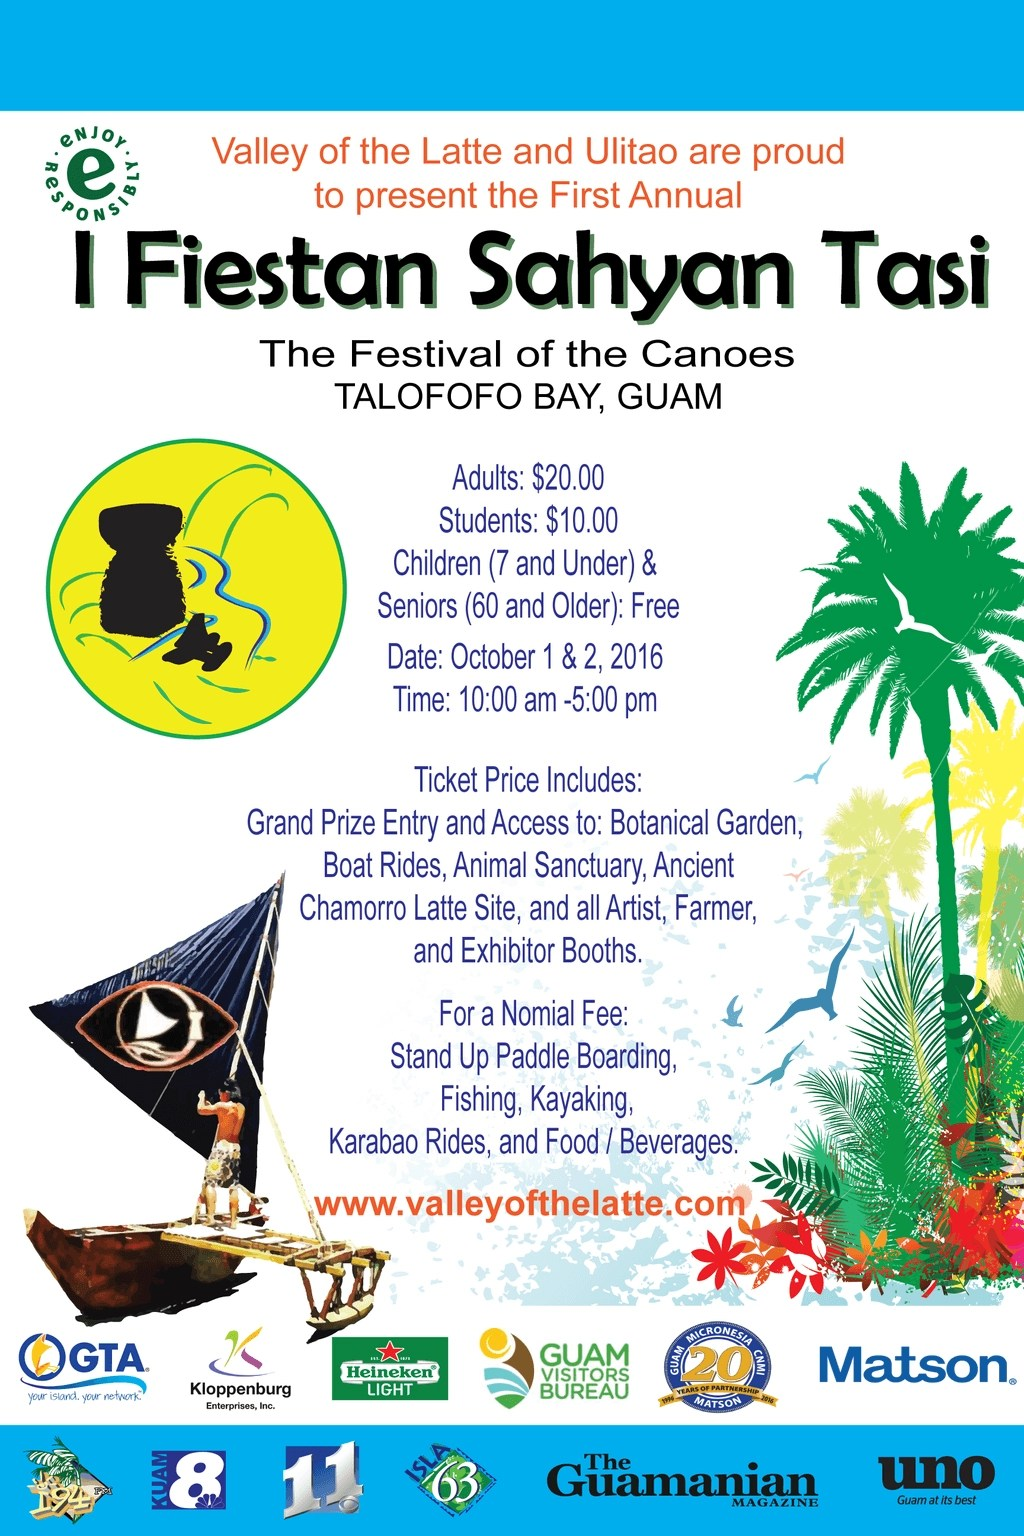 I Fiestan Sahyan Tasi- Festival of the Canoes October 1 and 2 at the Valley of the Latte, Guam.